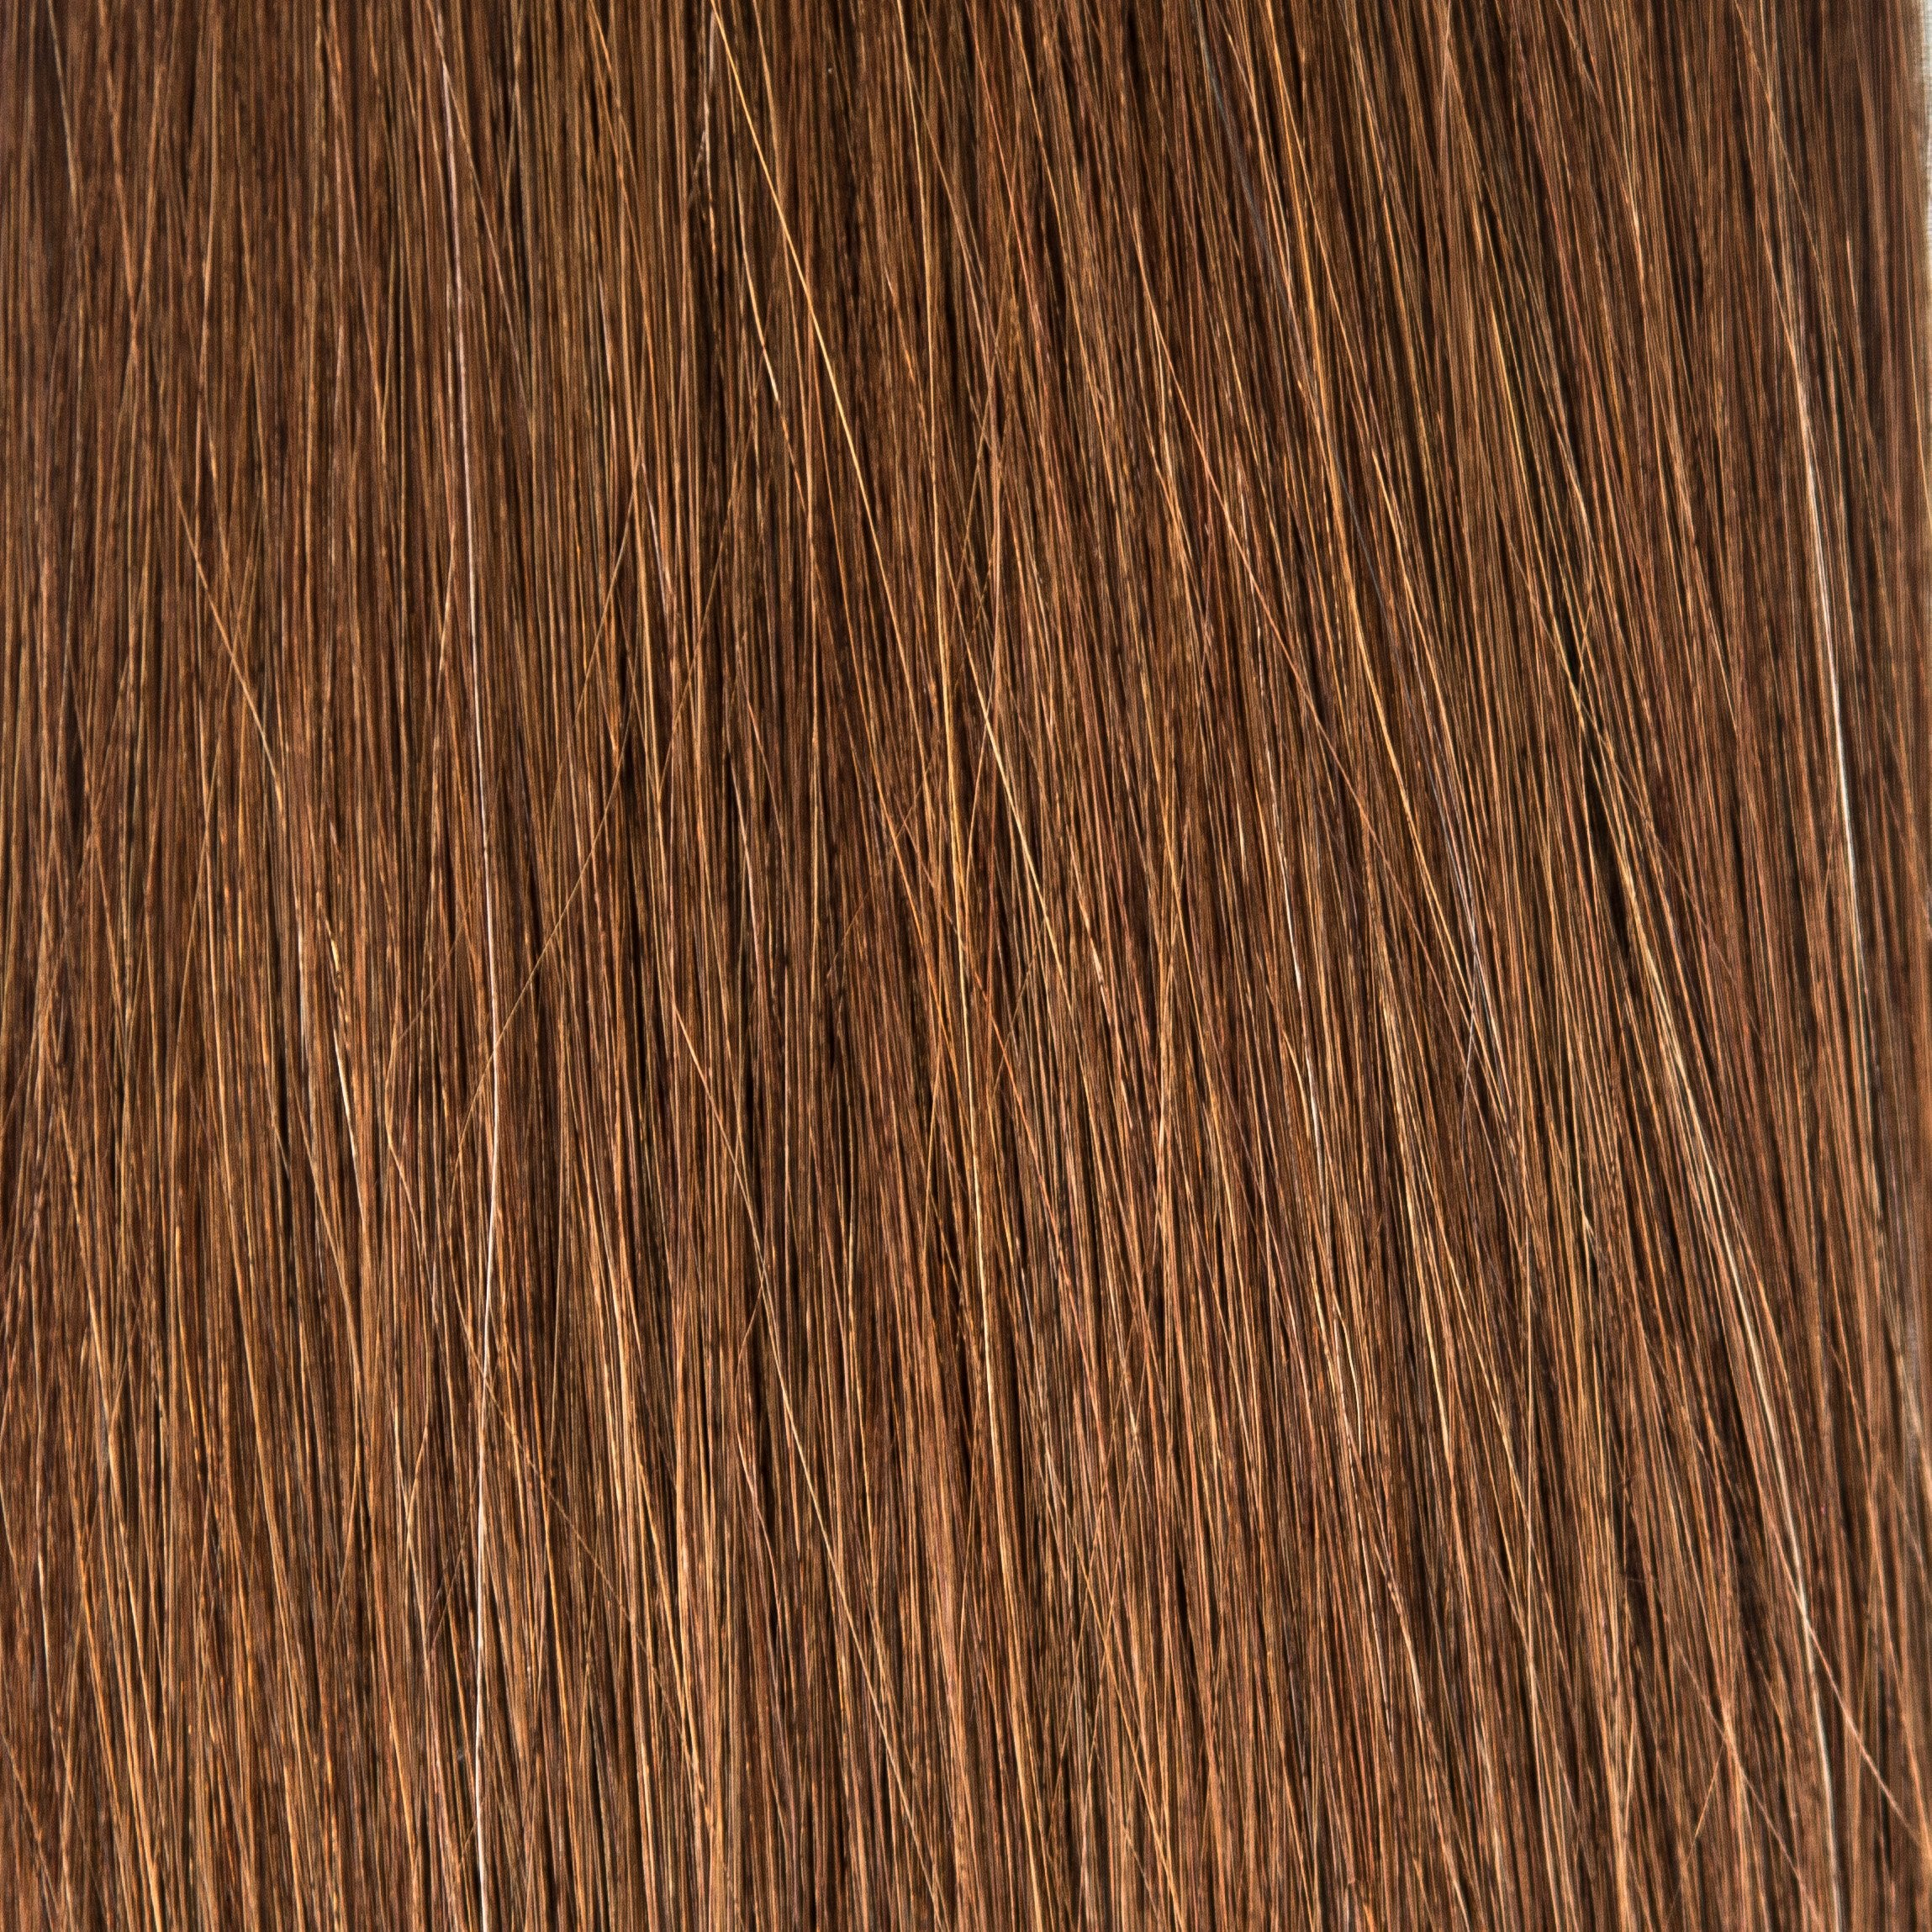 Laced Hair Tape-In Extensions #33 (Copper Penny)